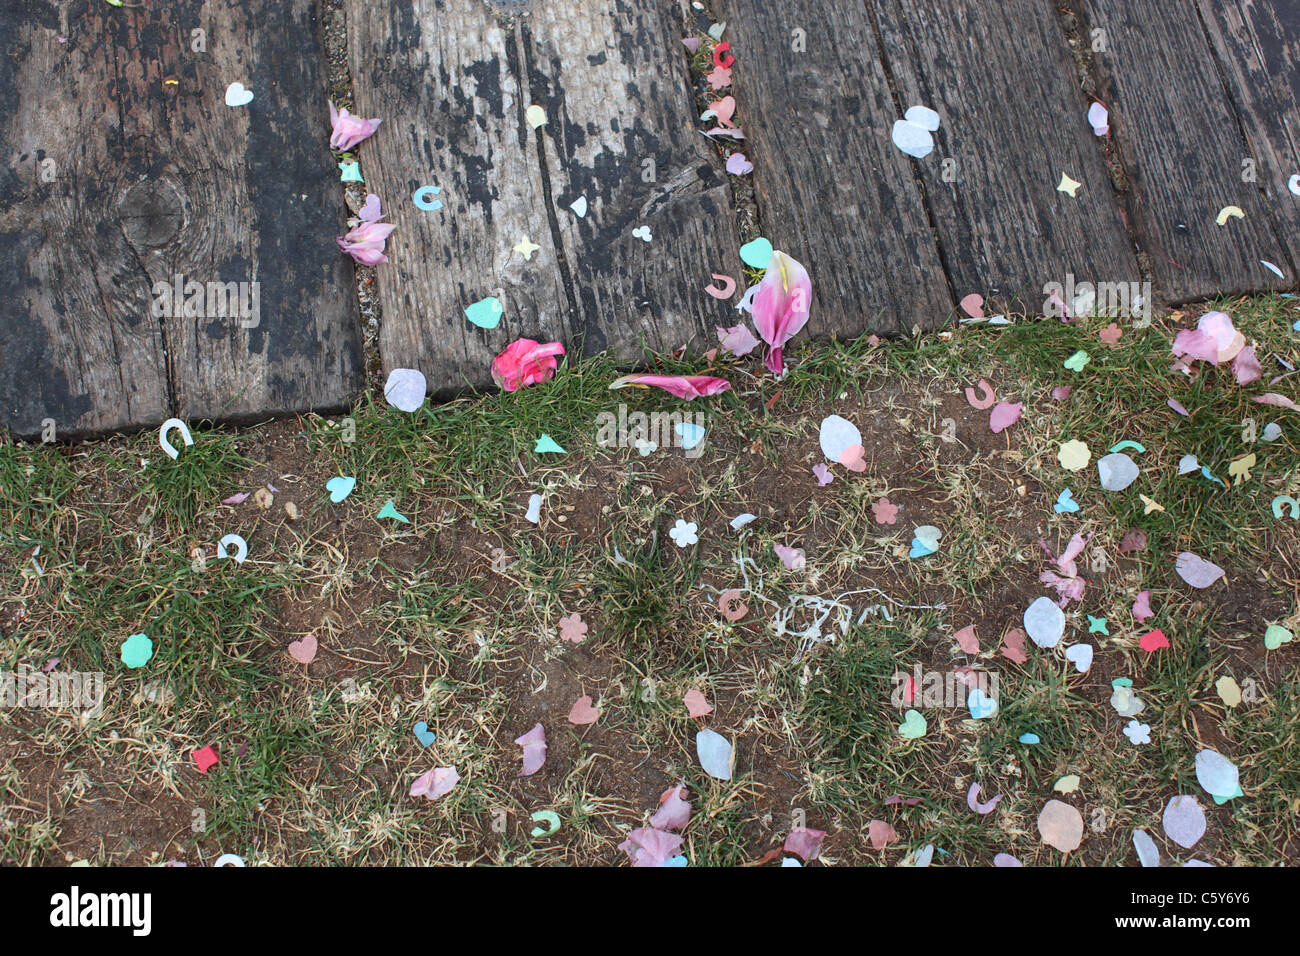 Confetti at a summer wedding, fallen on textured wood and green grass - Stock Image